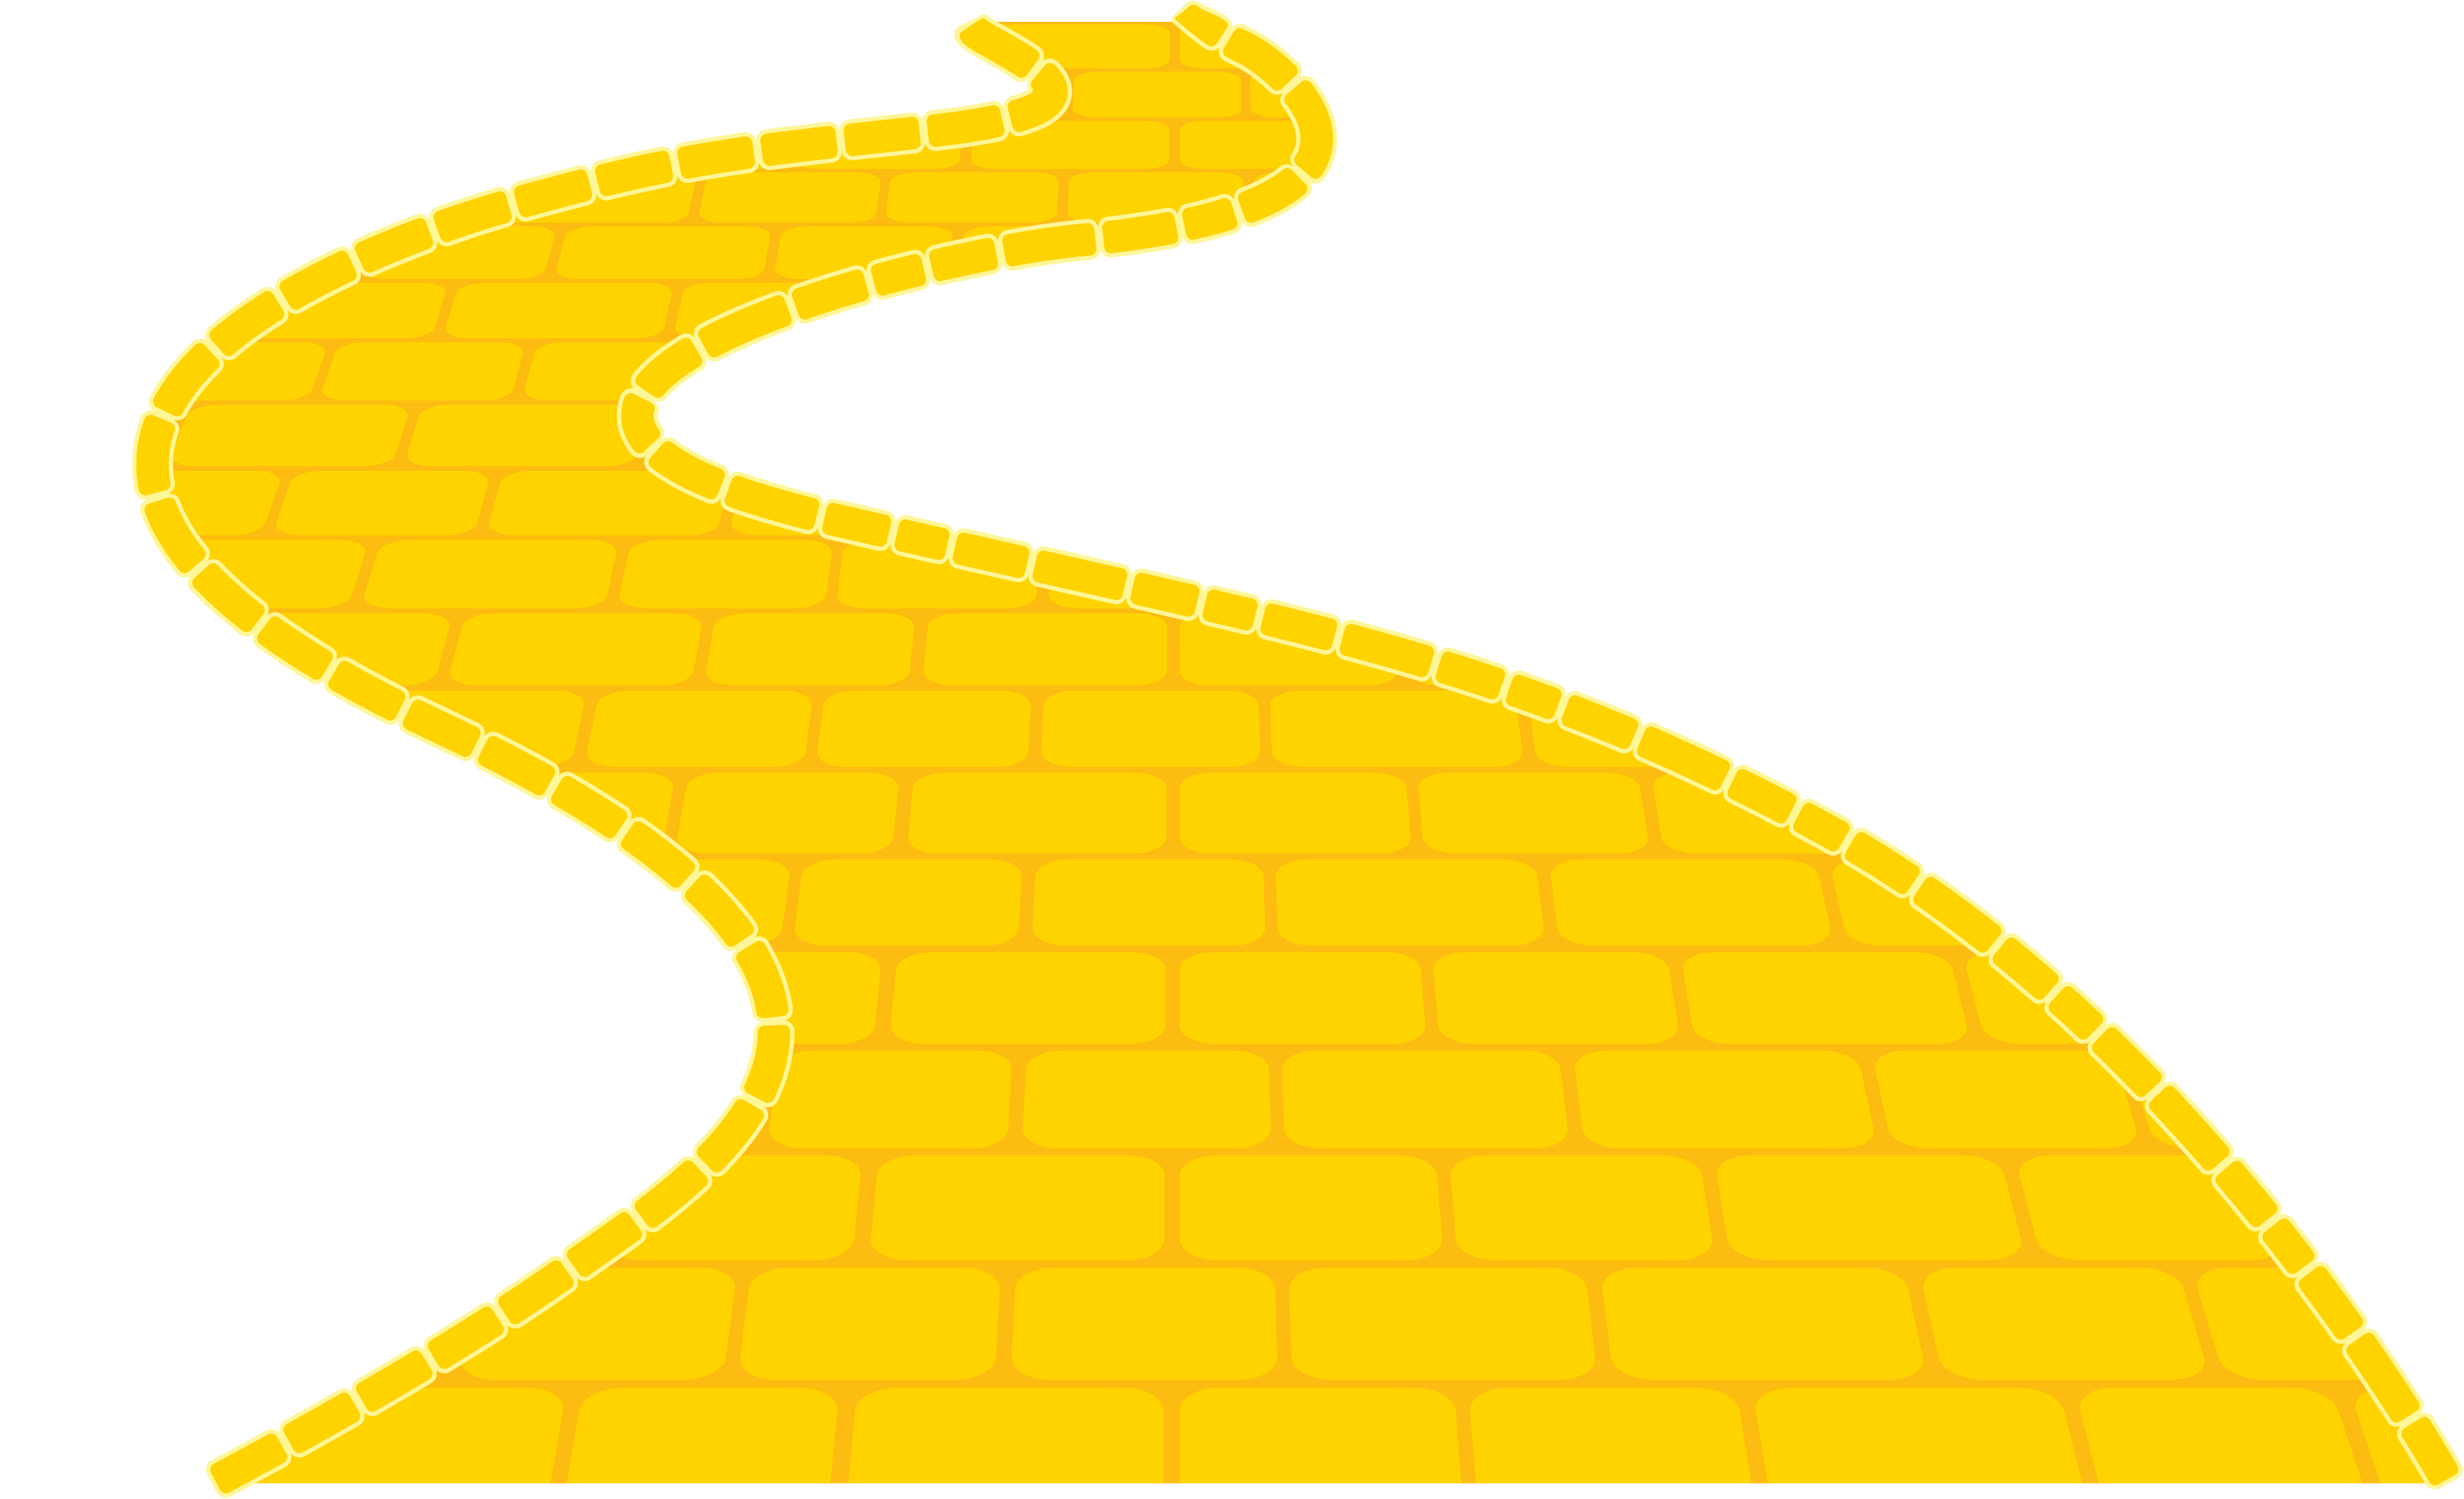 3497x2127 Yellow Brick Road Clipart Image Group